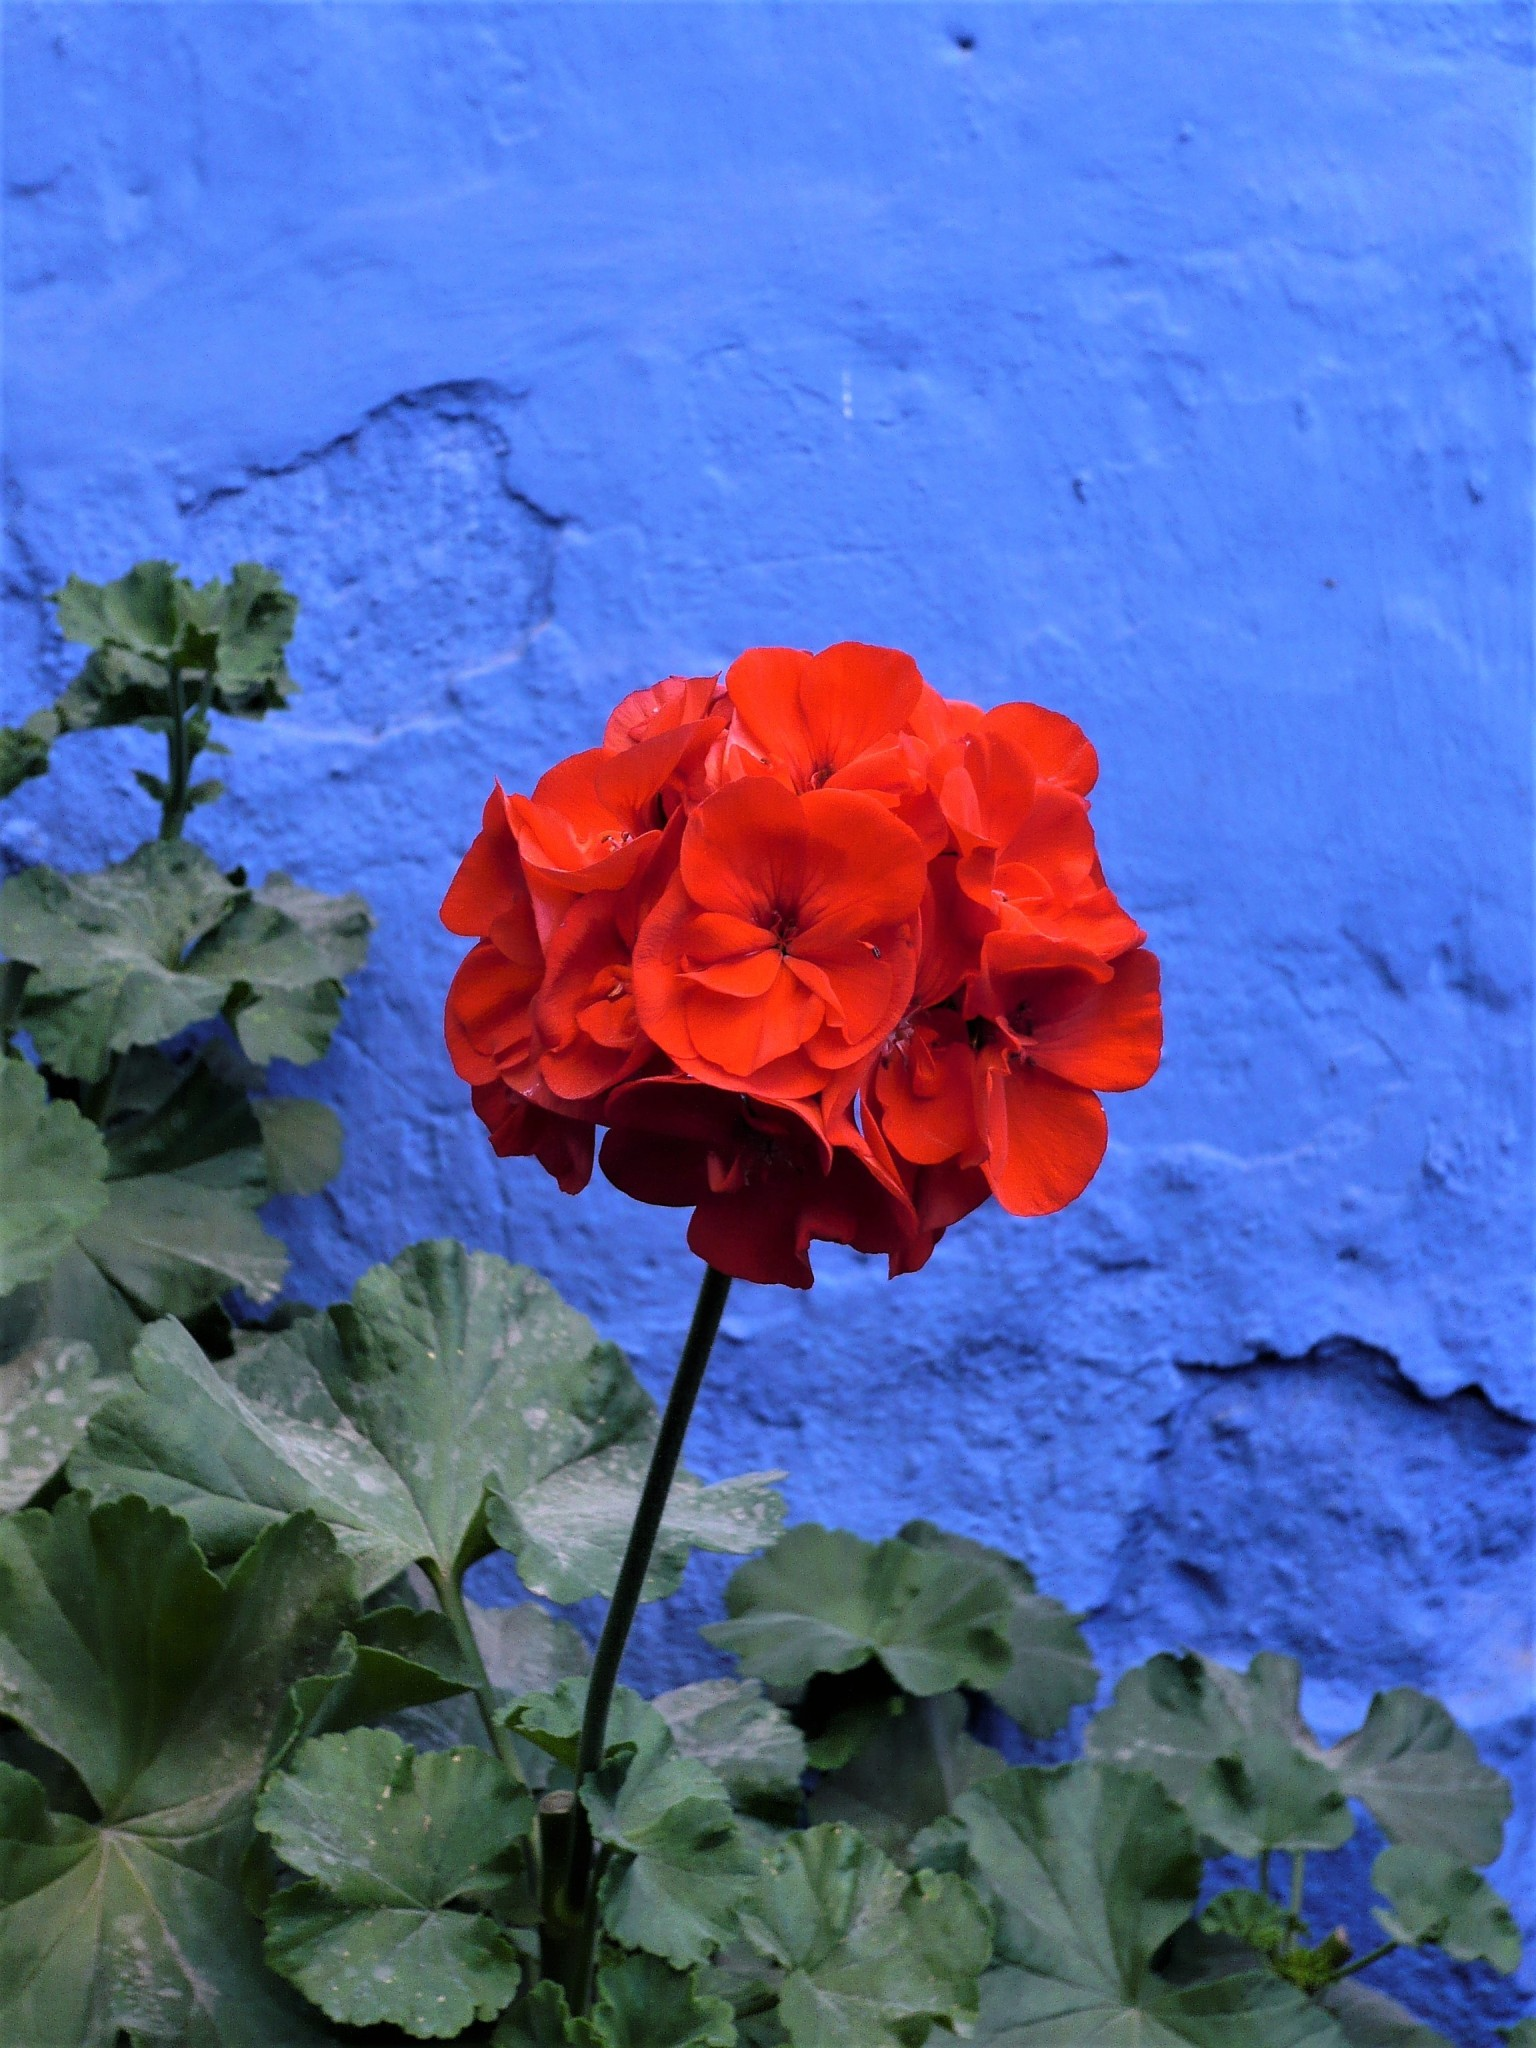 A bright red flower standing out against a vivid blue painted wall in Arequipa, Peru.